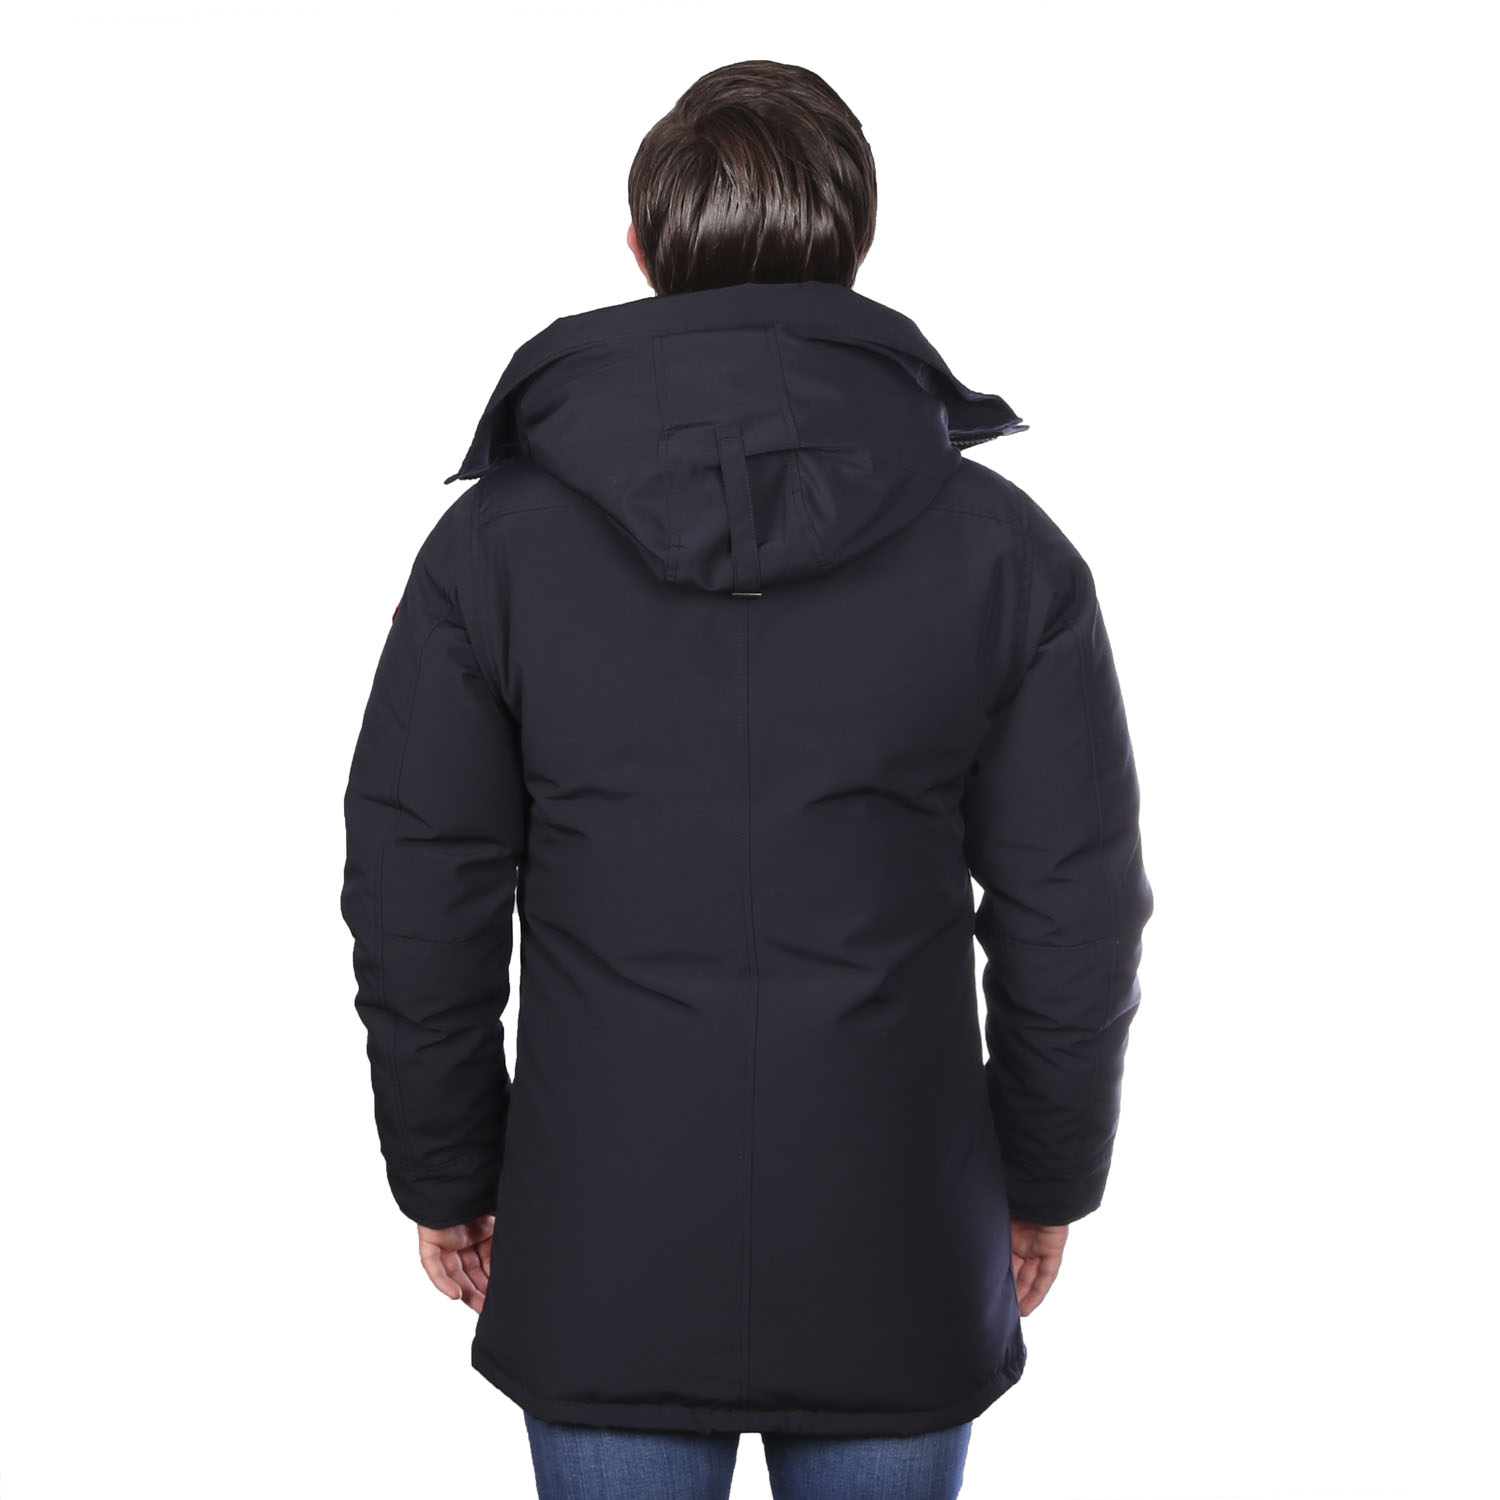 Cananda Goose chateau navy achter